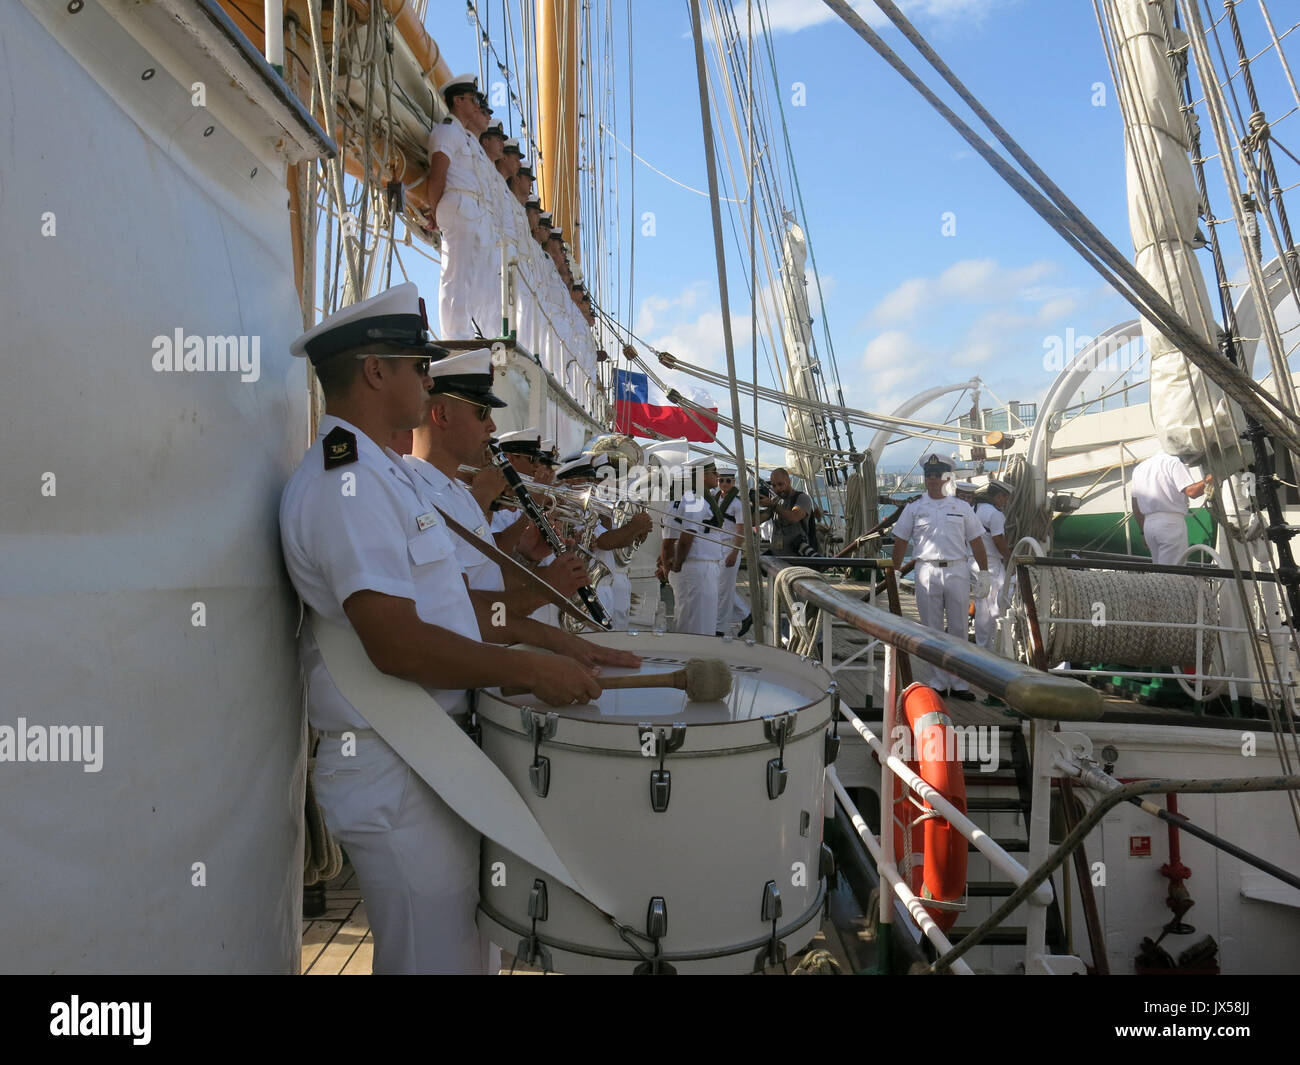 A view of the crew of the Chilean Army's training ship 'Esmeralda' in San Juan, Puerto Rico, 14 August 2017. The 'Esmeralda' arrived in San Juan de Puerto Rico as part of its 62nd training cruise. EFE/Alfonso Rodriguez - Stock Image